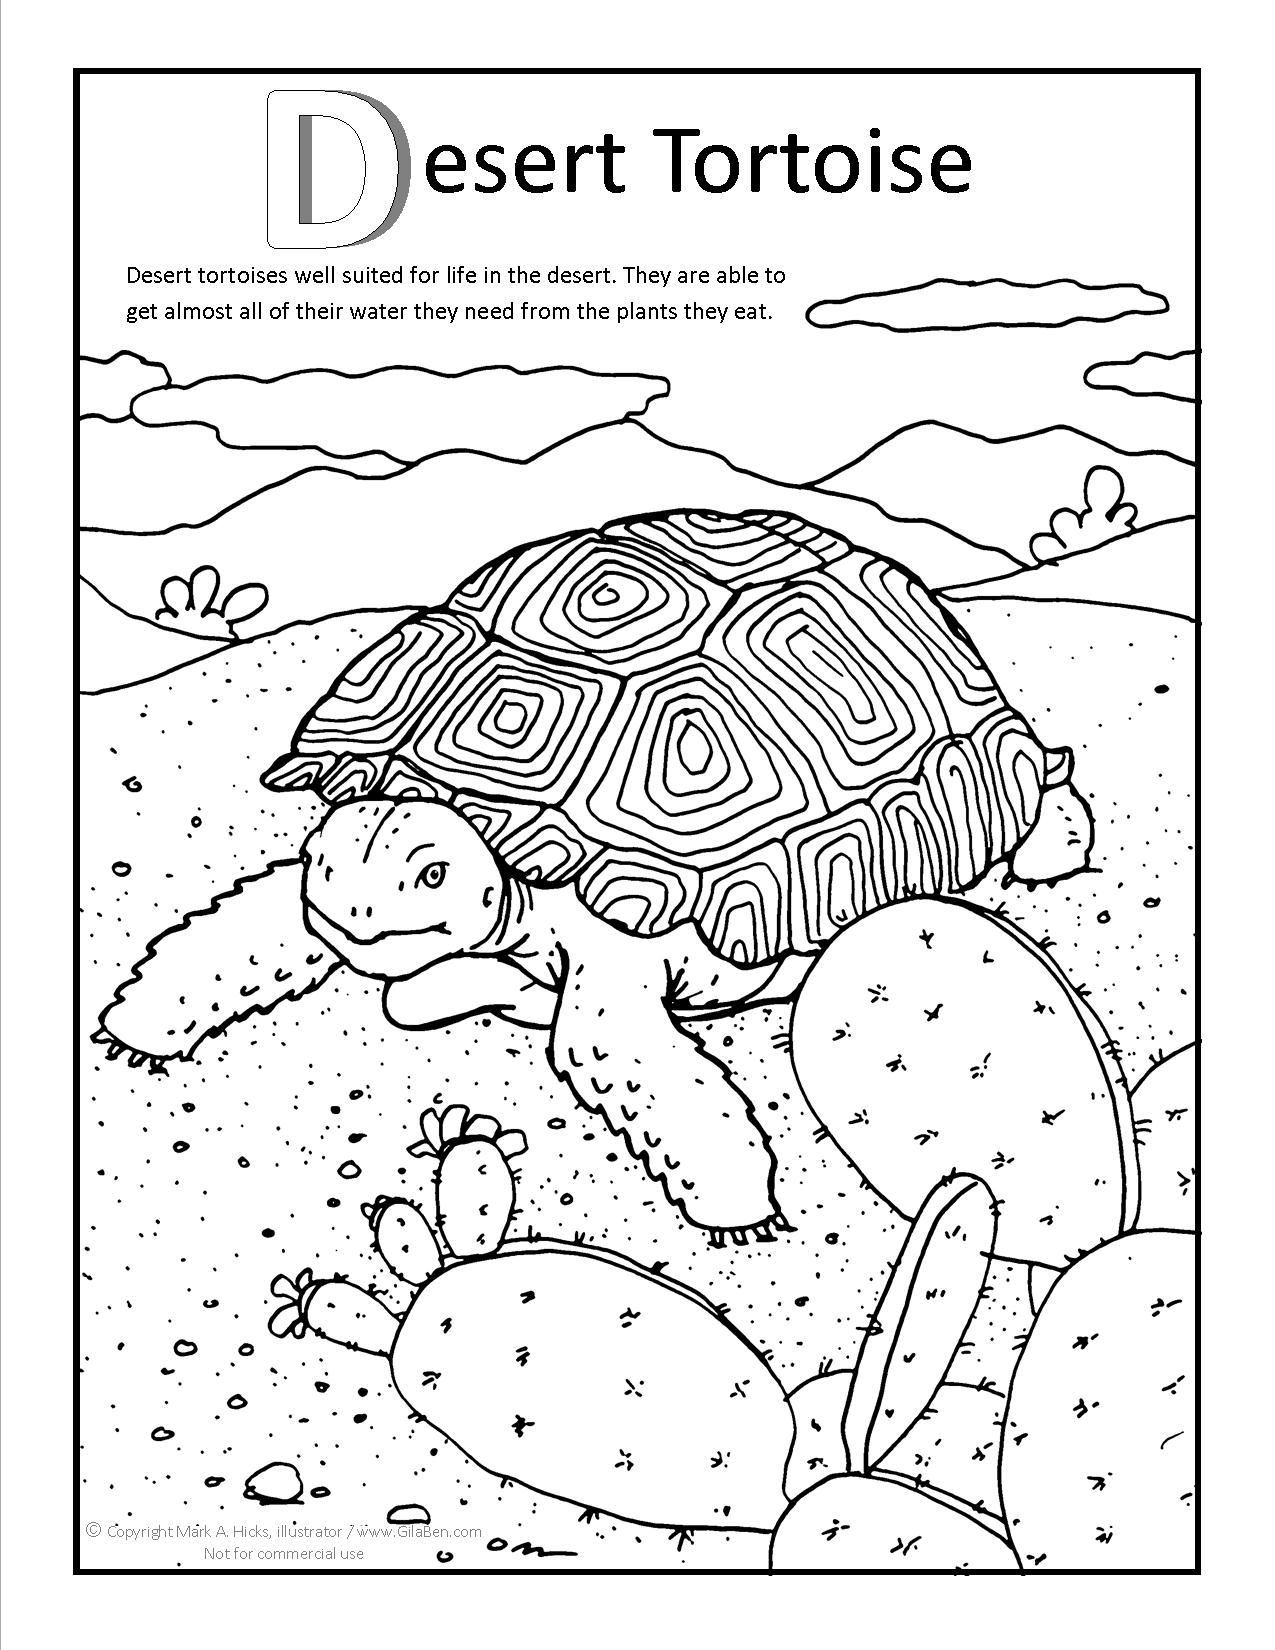 desert tortoise coloring page at gilaben com arizona coloring